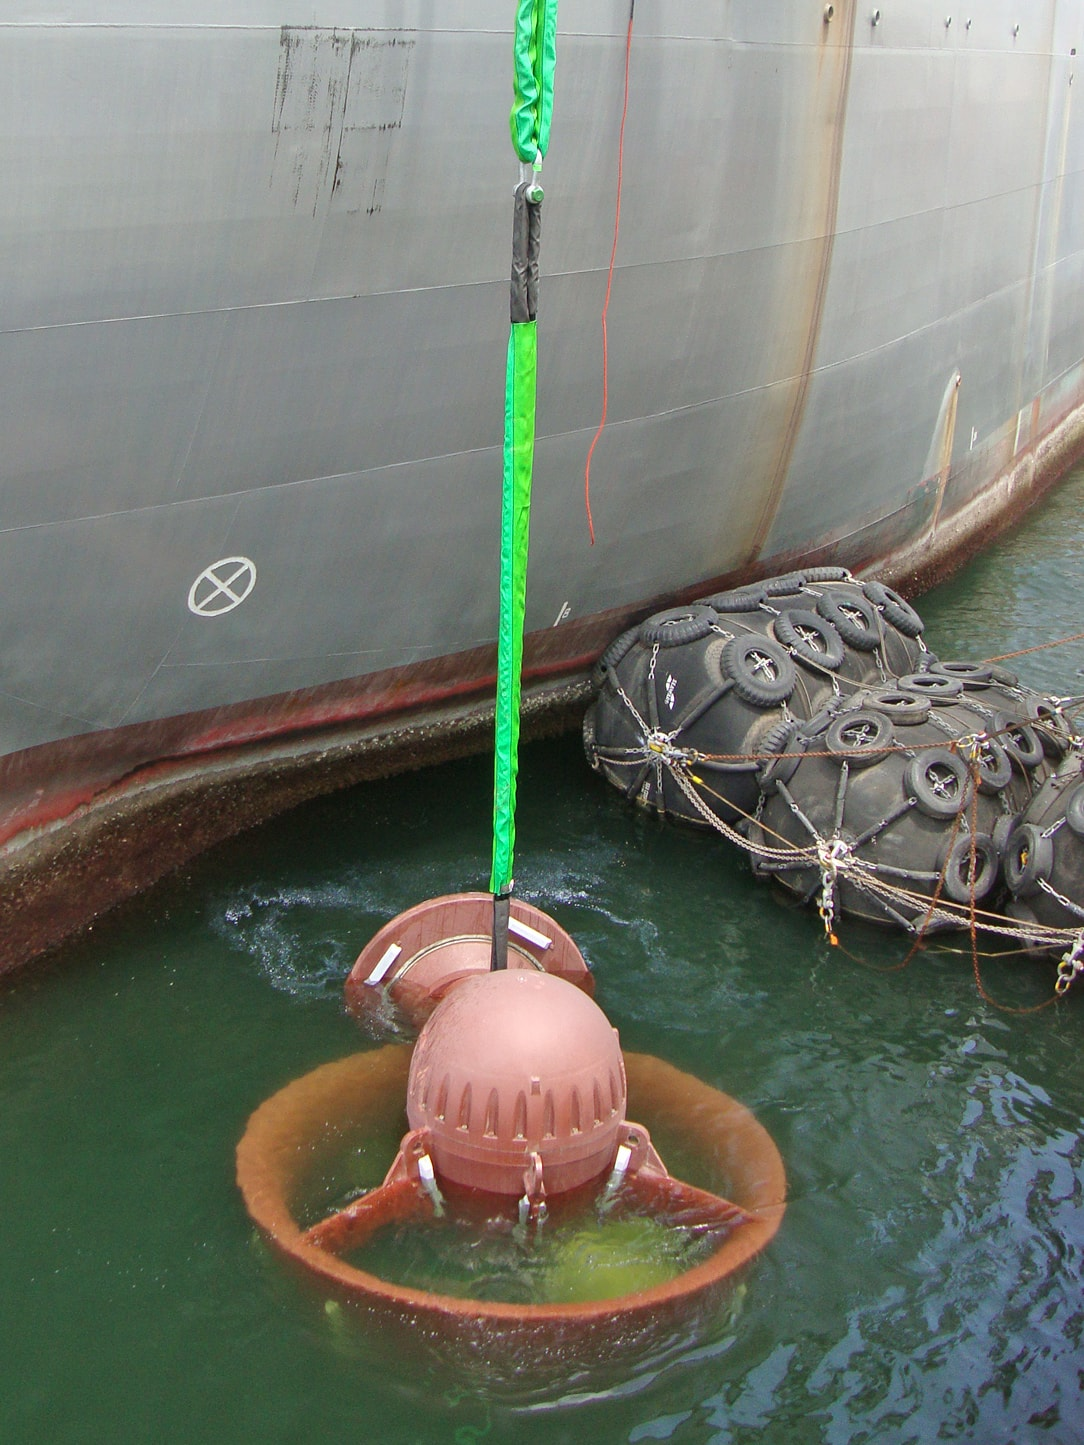 Green pin biglift thrusters drilling ship